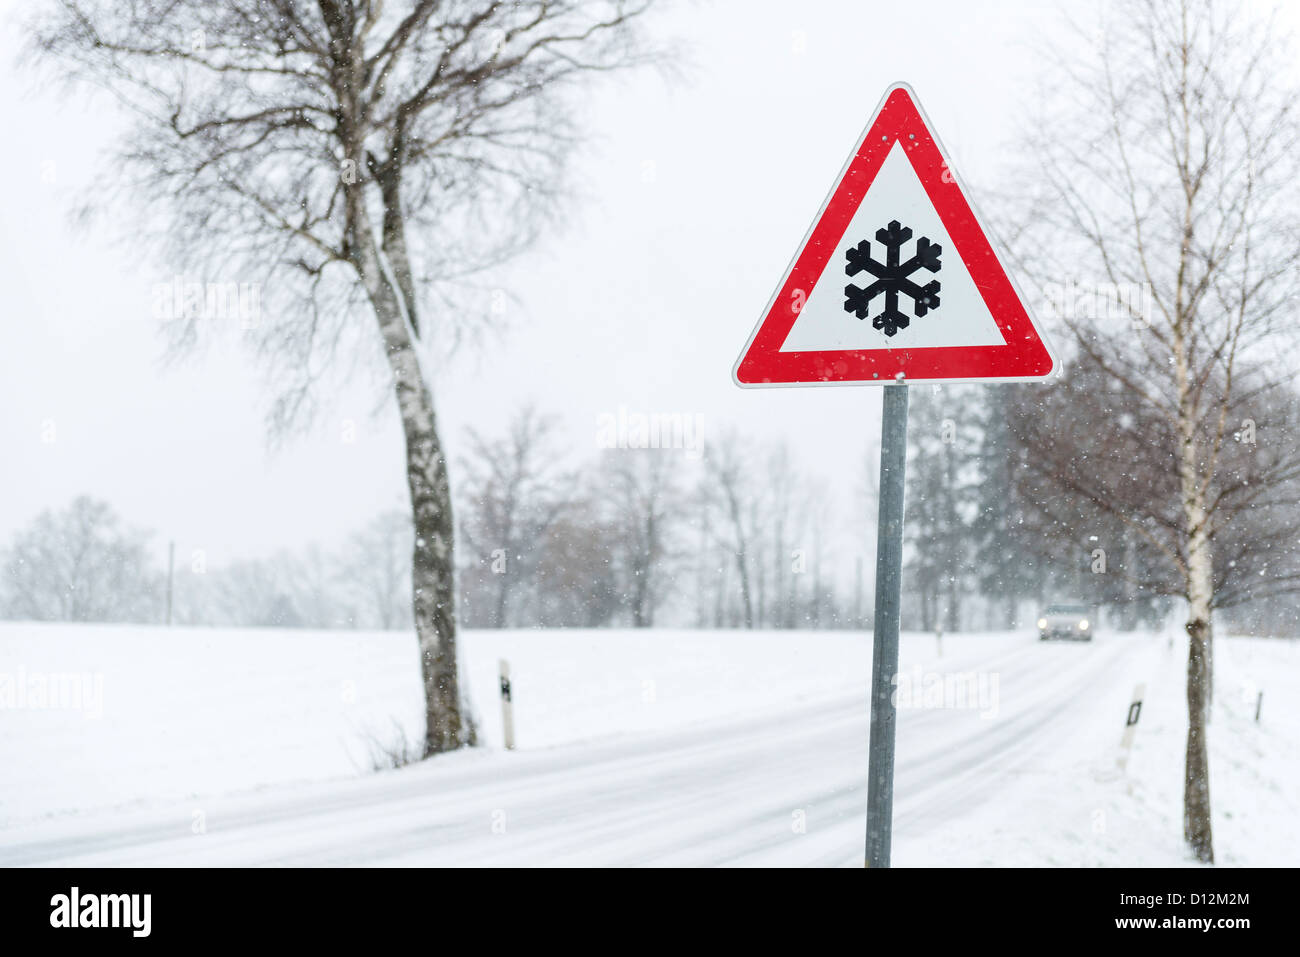 Road sign beside wintry road in Bavaria/Germany - Stock Image